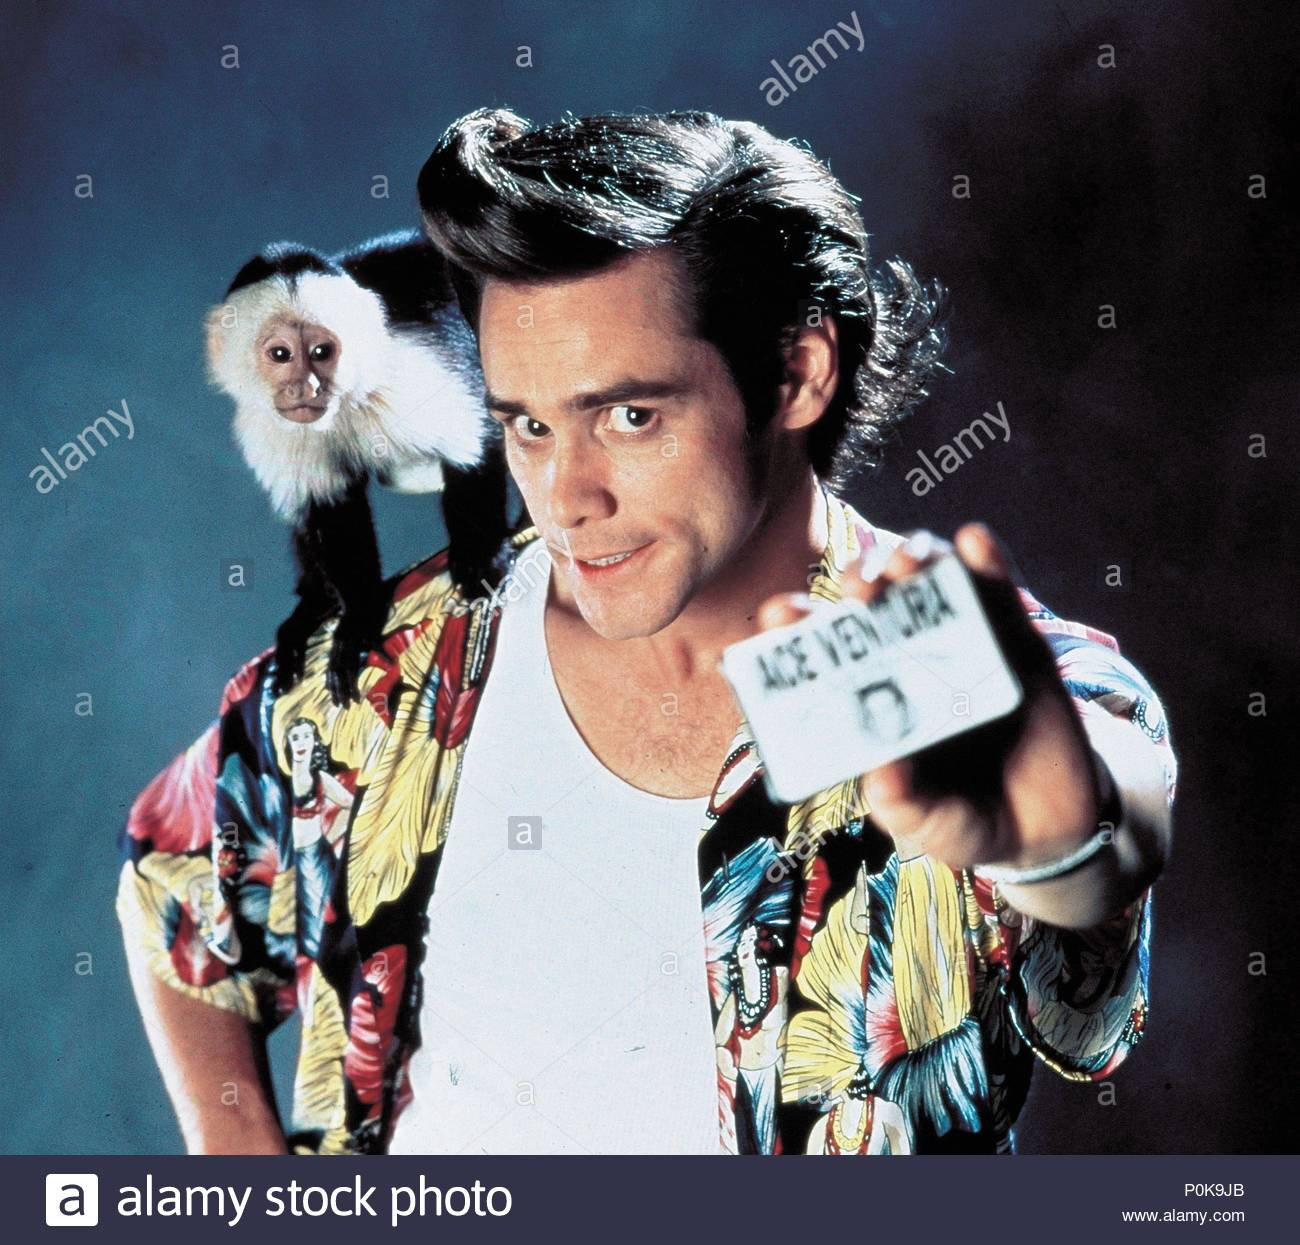 Ace Ventura 1994 Stock Photos Ace Ventura 1994 Stock Images Alamy